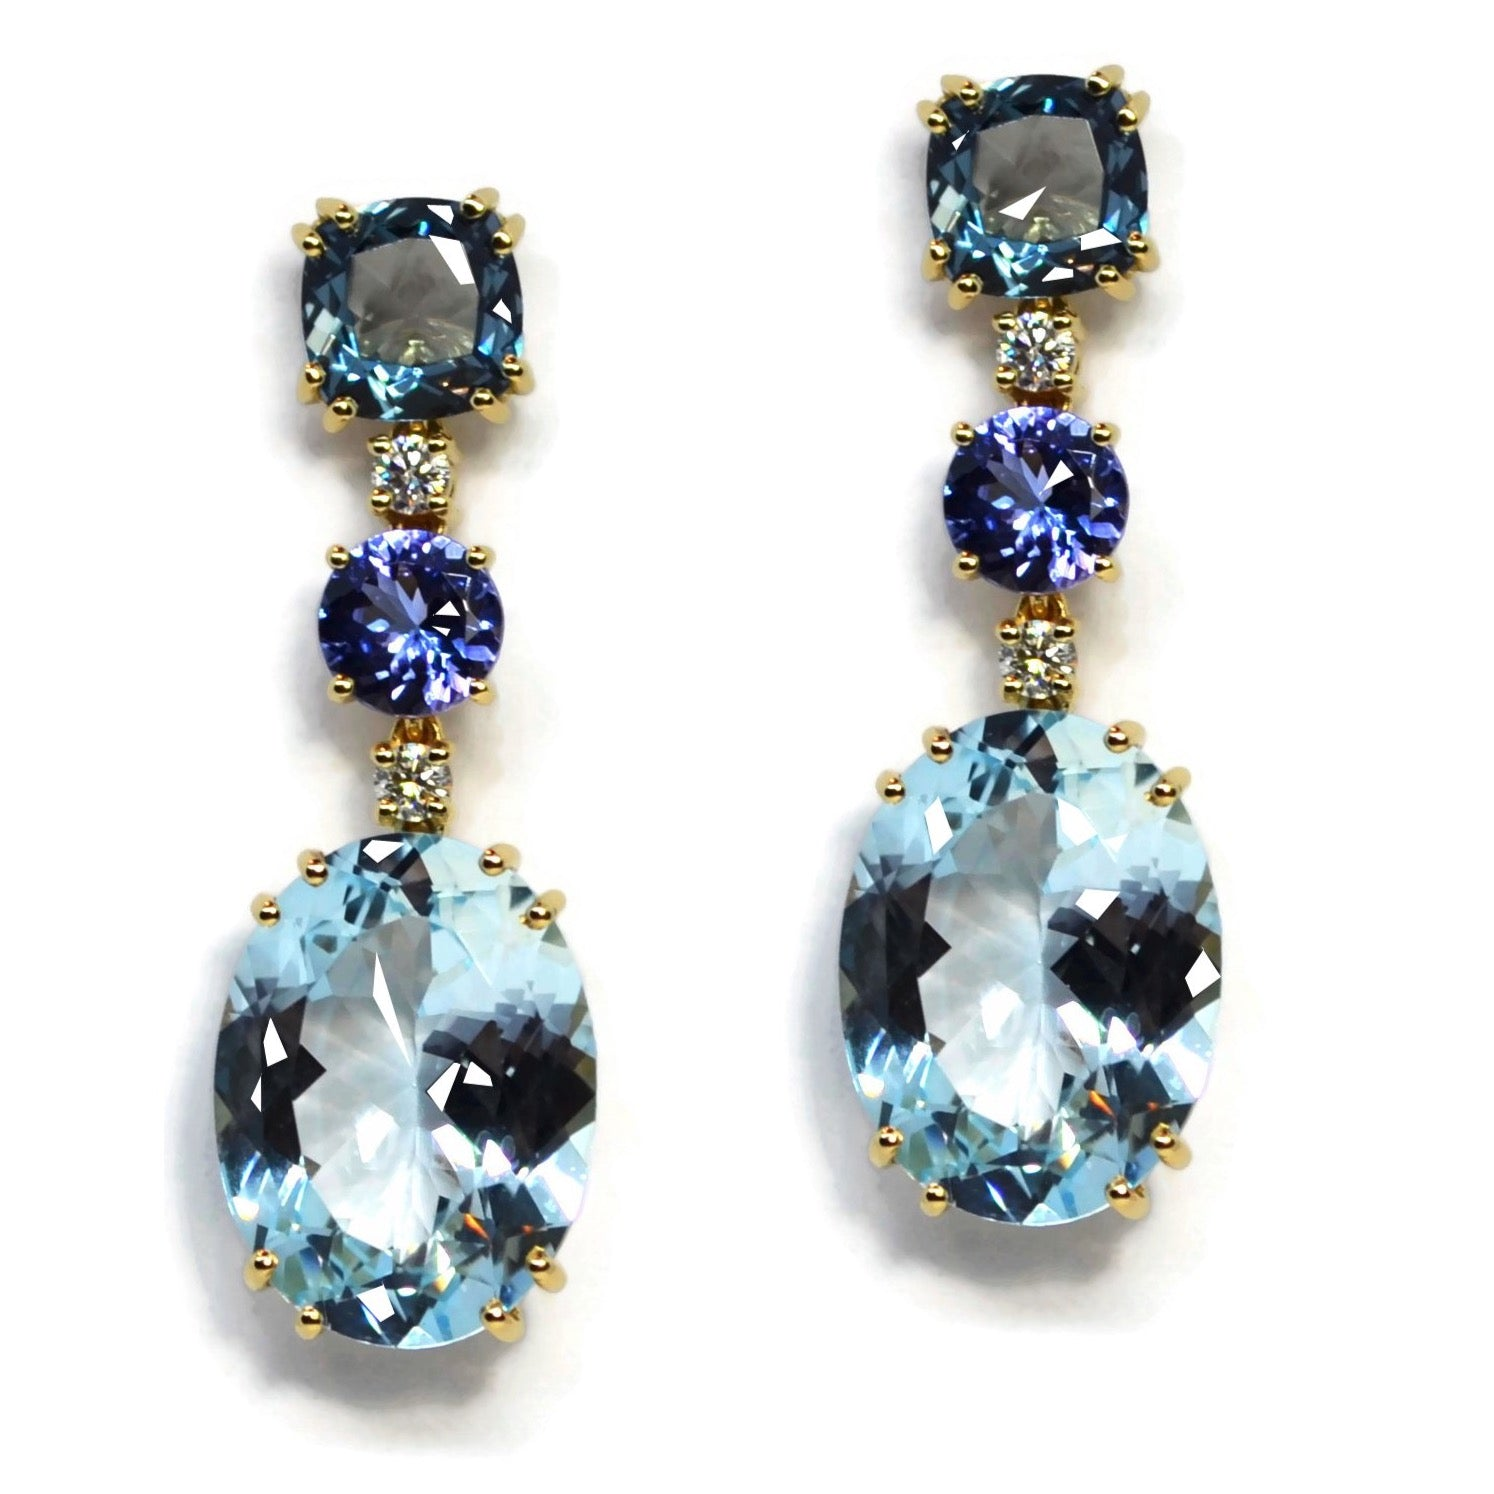 A-FURST-PARTY-DROP-EARRINGS-BLUE-TOPAZ-TANZANITE-DIAMONDS-YELLOW-GOLD-O1785GULTZU1